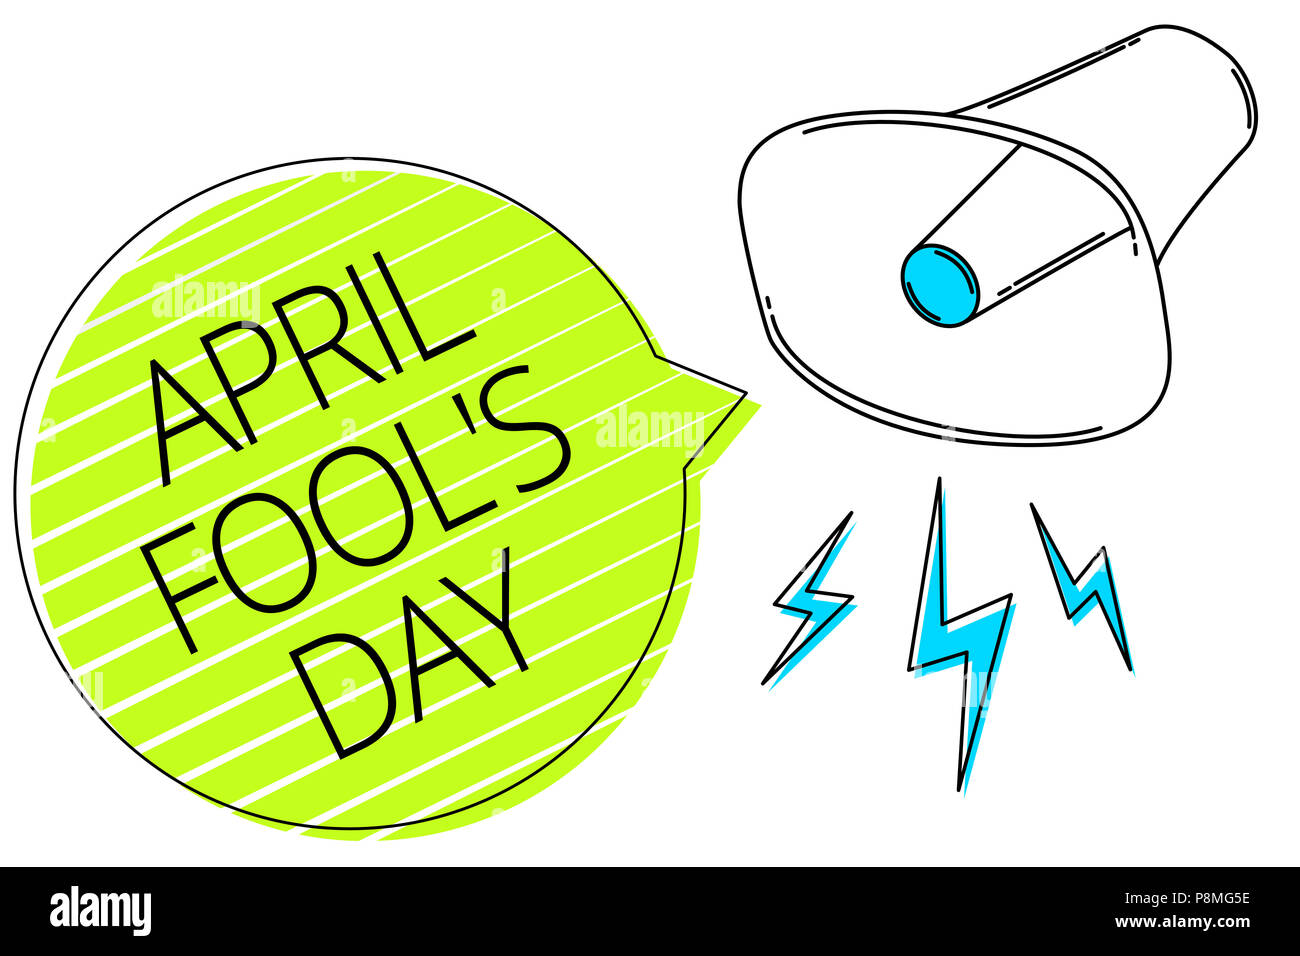 Writing note showing April Fool s is Day. Business photo showcasing Practical jokes humor pranks Celebration funny foolish Three lines text messages a - Stock Image